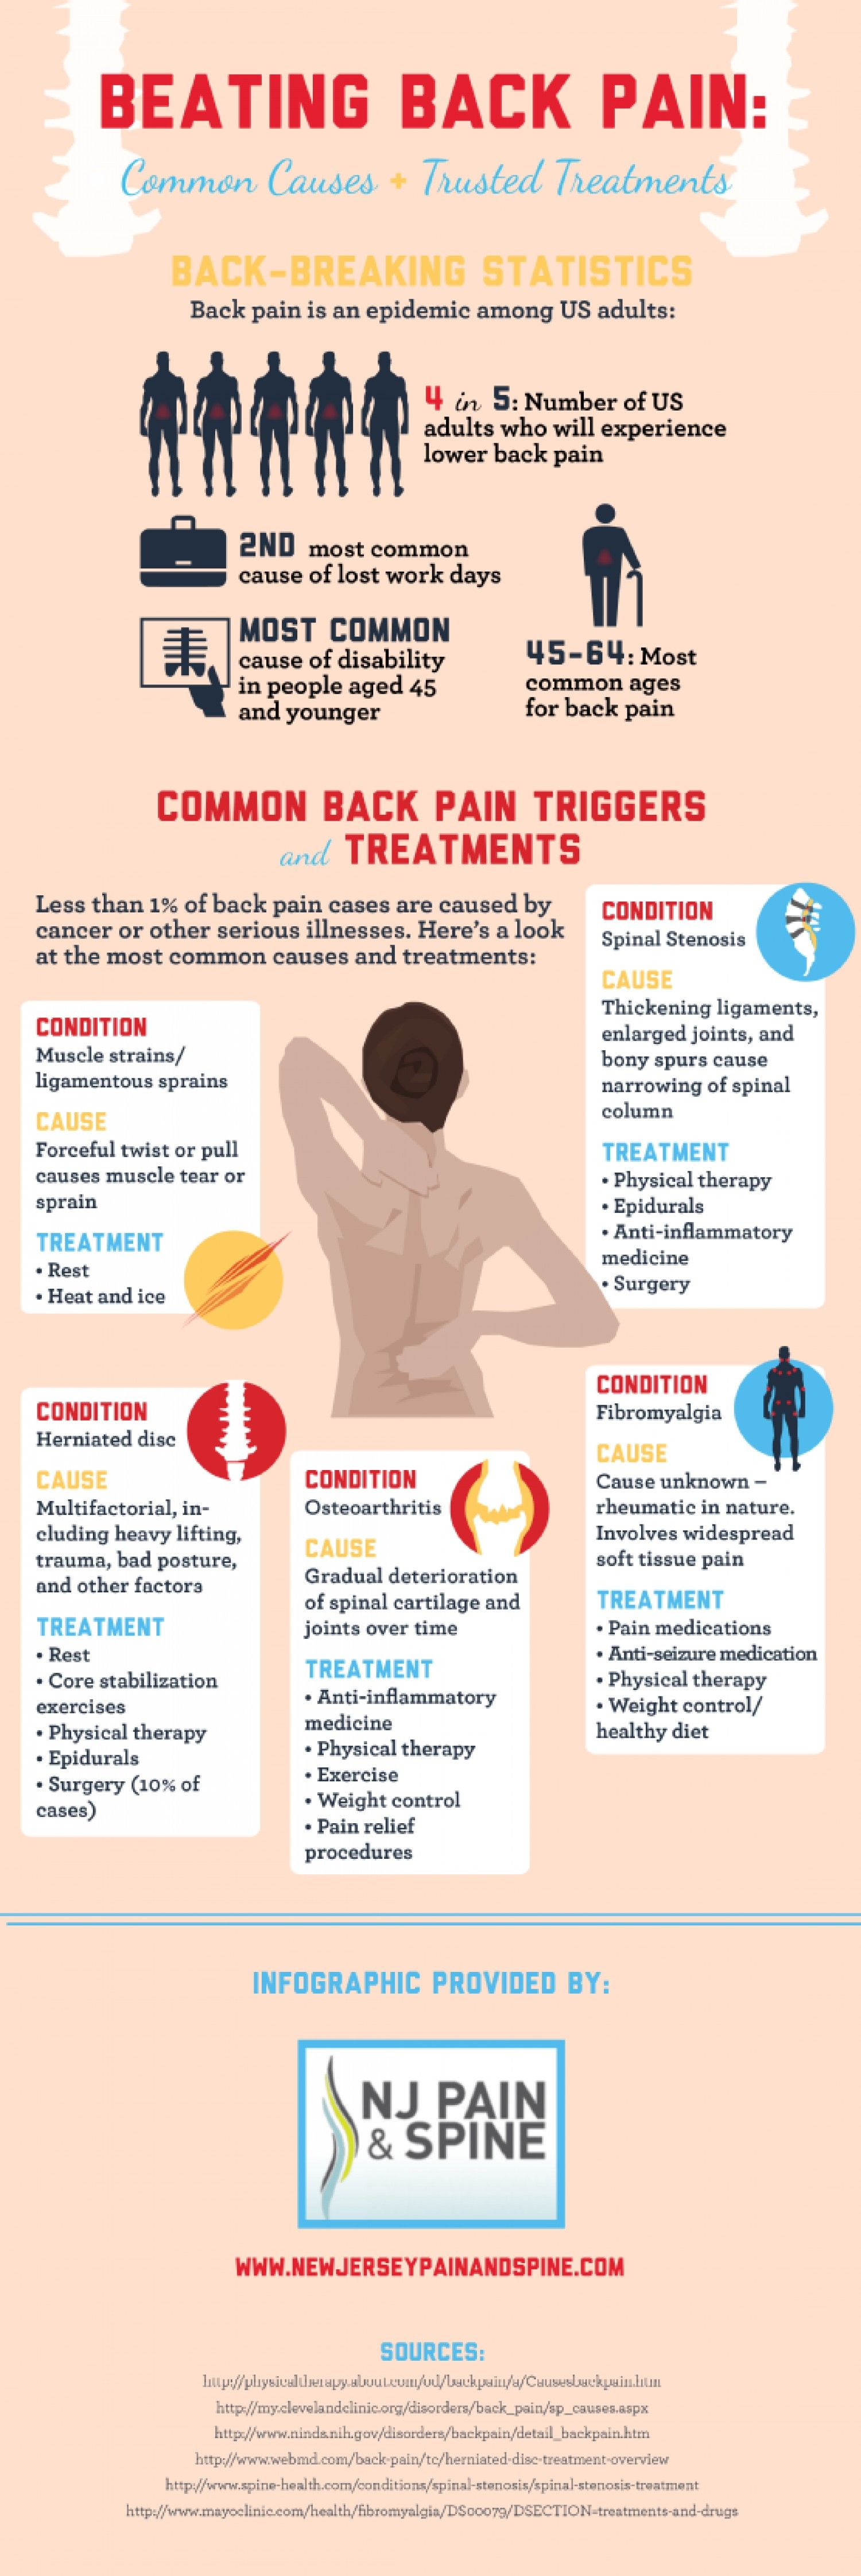 beating back pain common causes and trusted treatments infographic healing pinterest. Black Bedroom Furniture Sets. Home Design Ideas